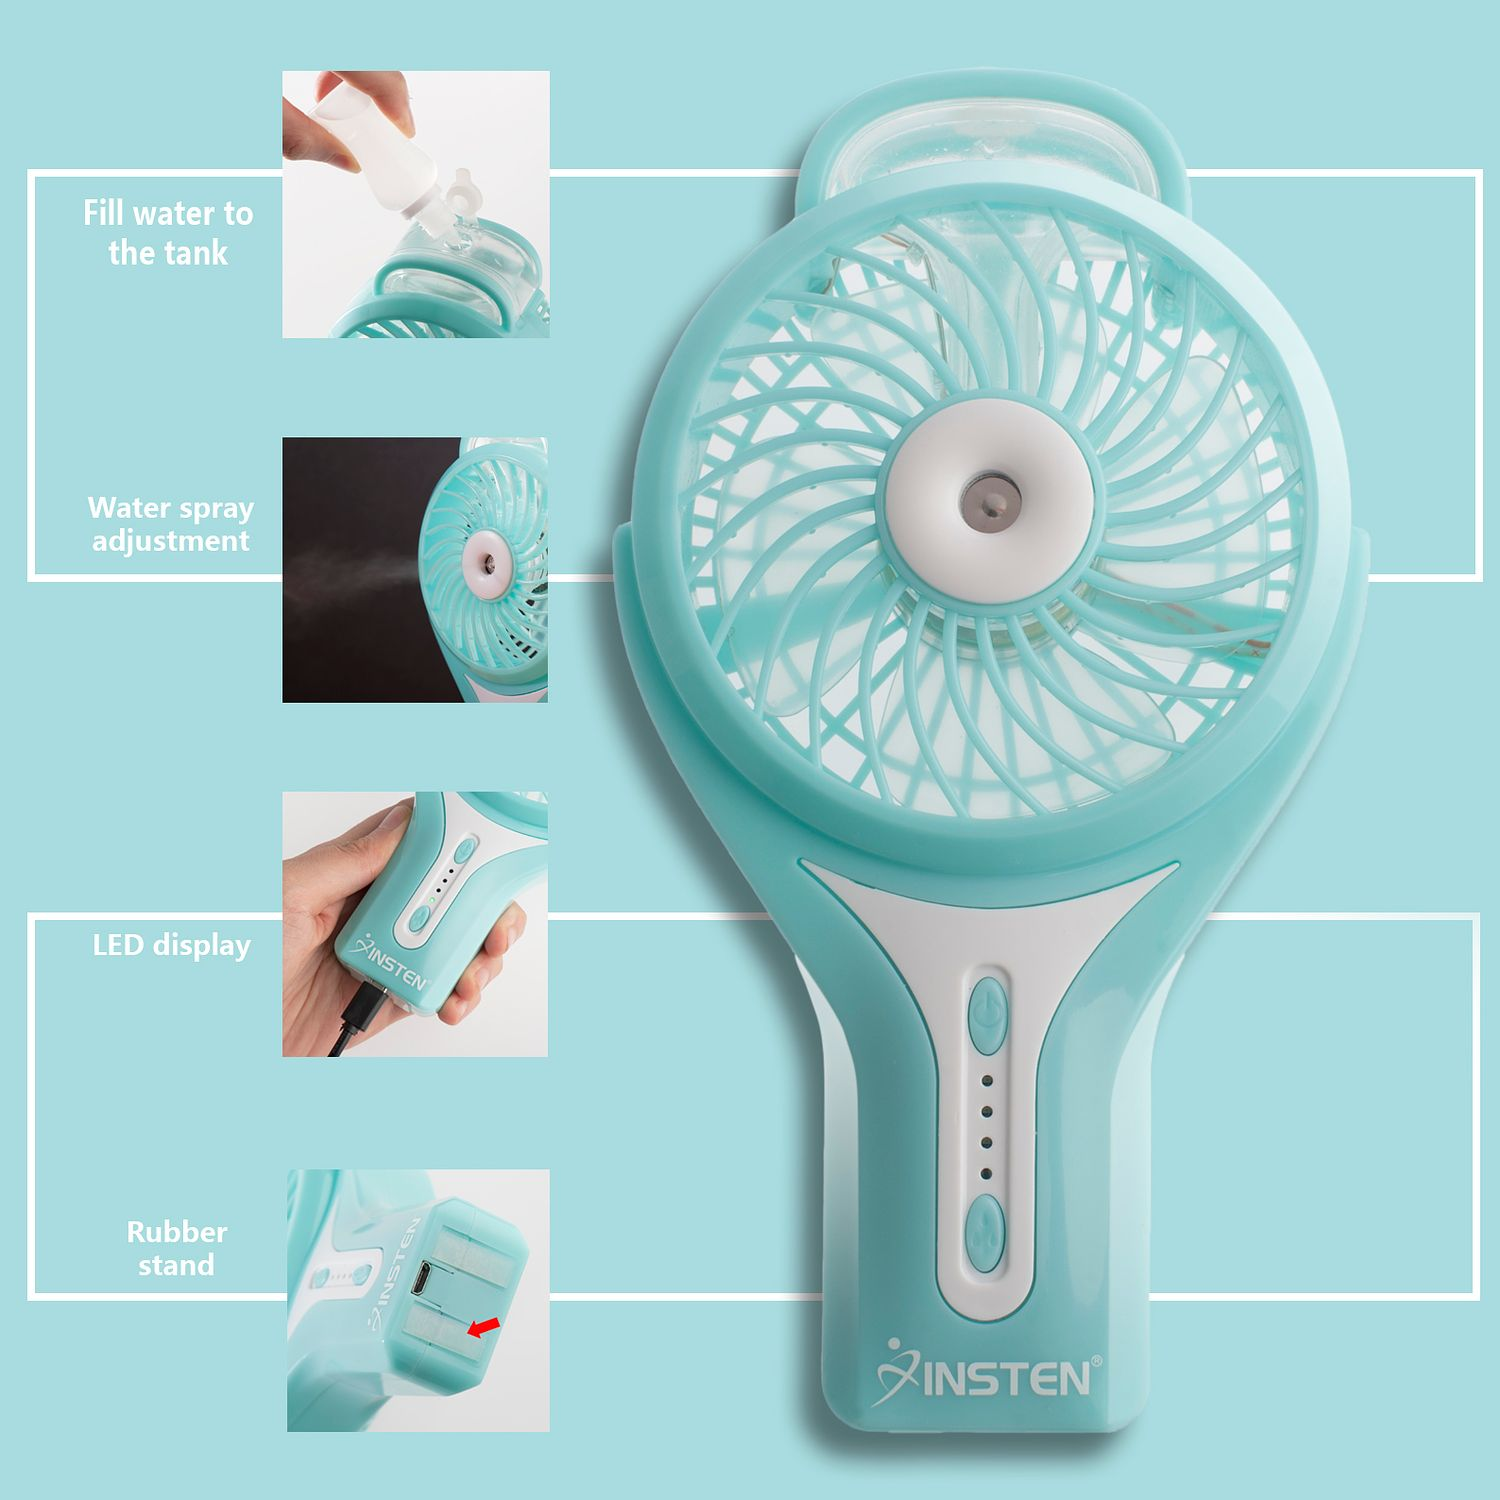 Insten Portable Electric Water Misting Fan - Silent Personal Mini Handheld Cooling Mister Humidifier Cooler (3 Speed & 2 Spray mode LED)(Stable Standing Base)(Includes Battery Charging USB Cable) Blue - image 4 de 6